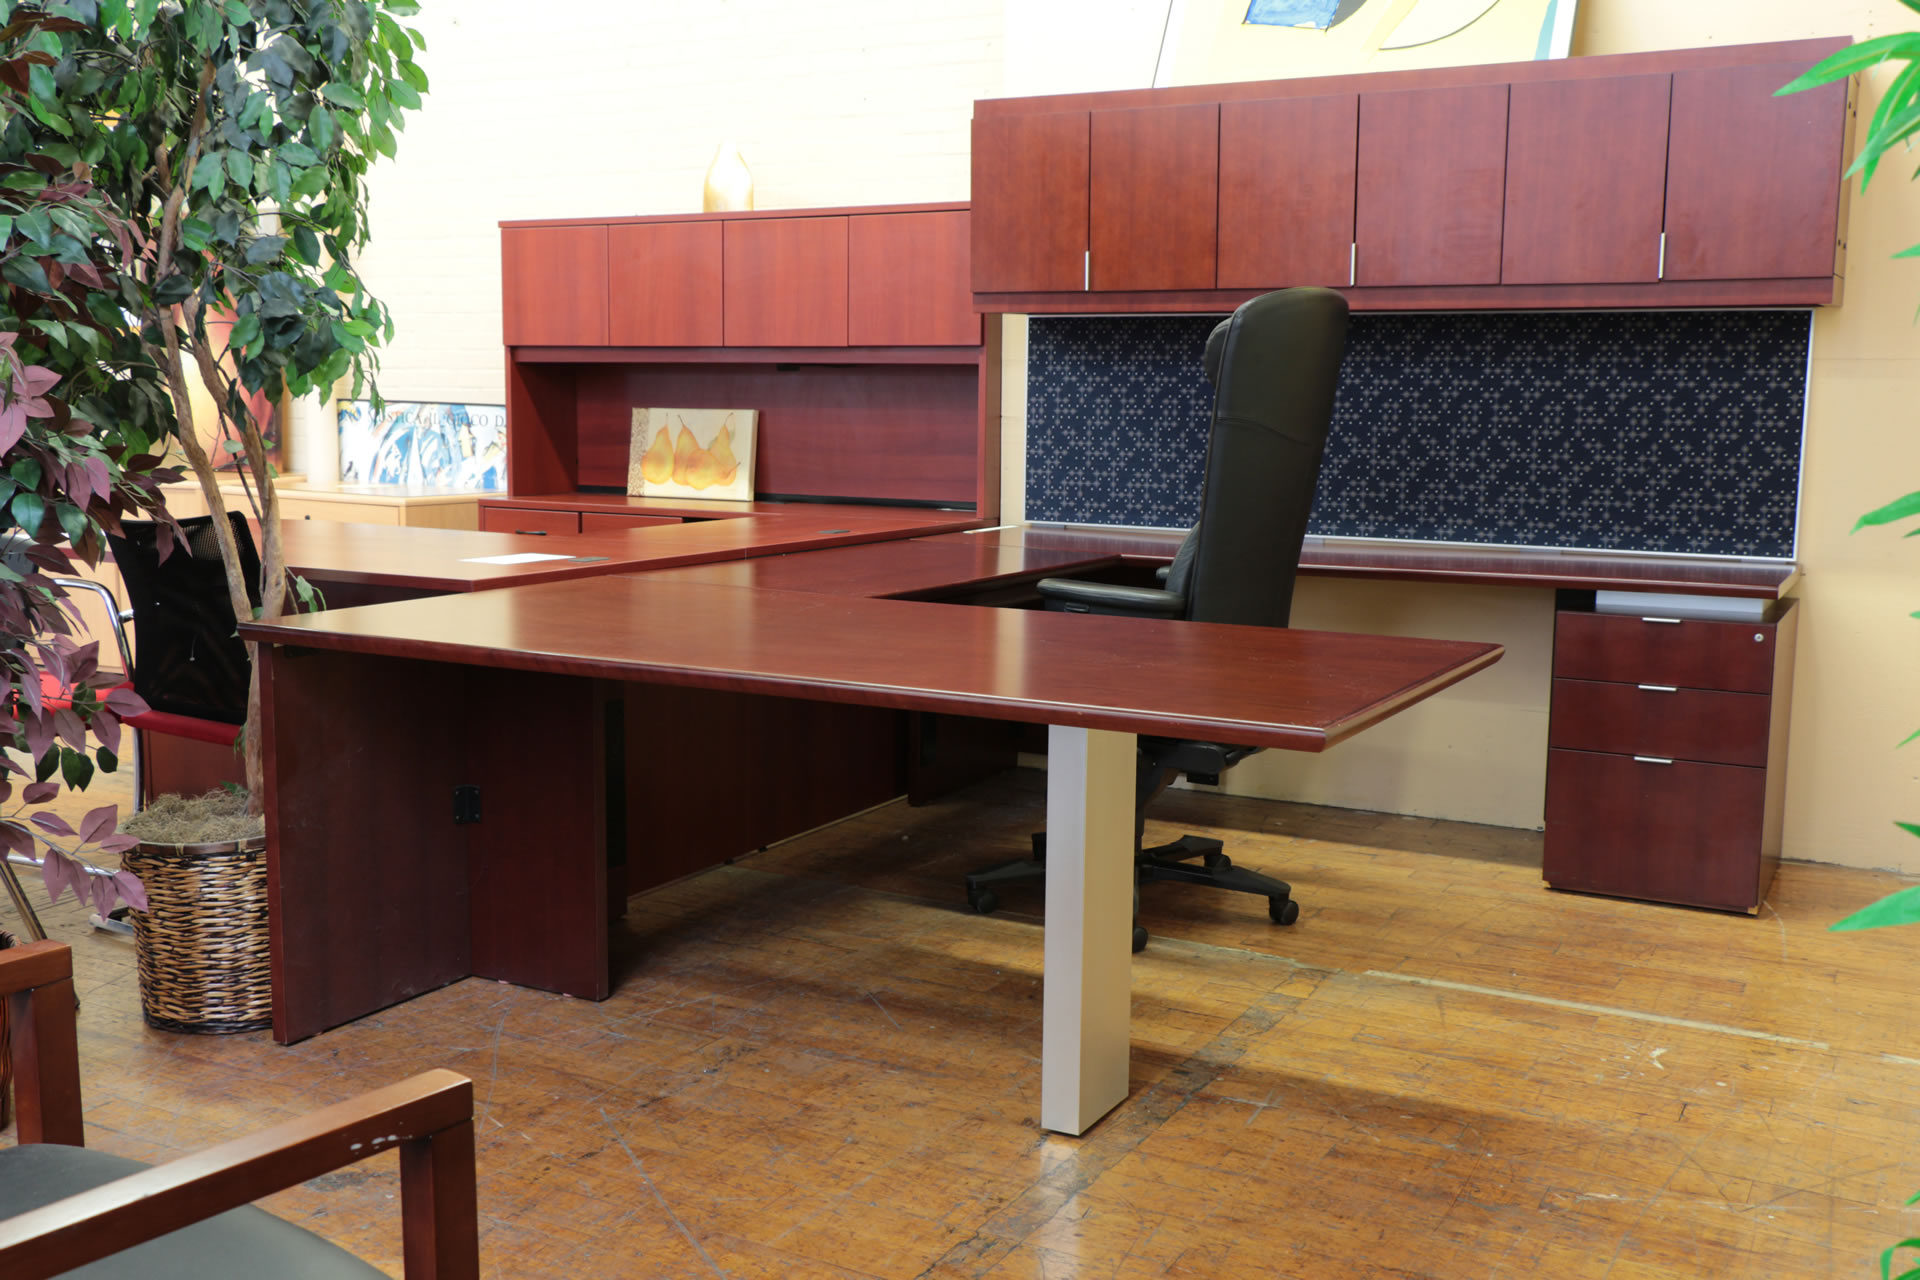 peartreeofficefurniture_peartreeofficefurniture_peartreeofficefurniture_img_9255.jpg